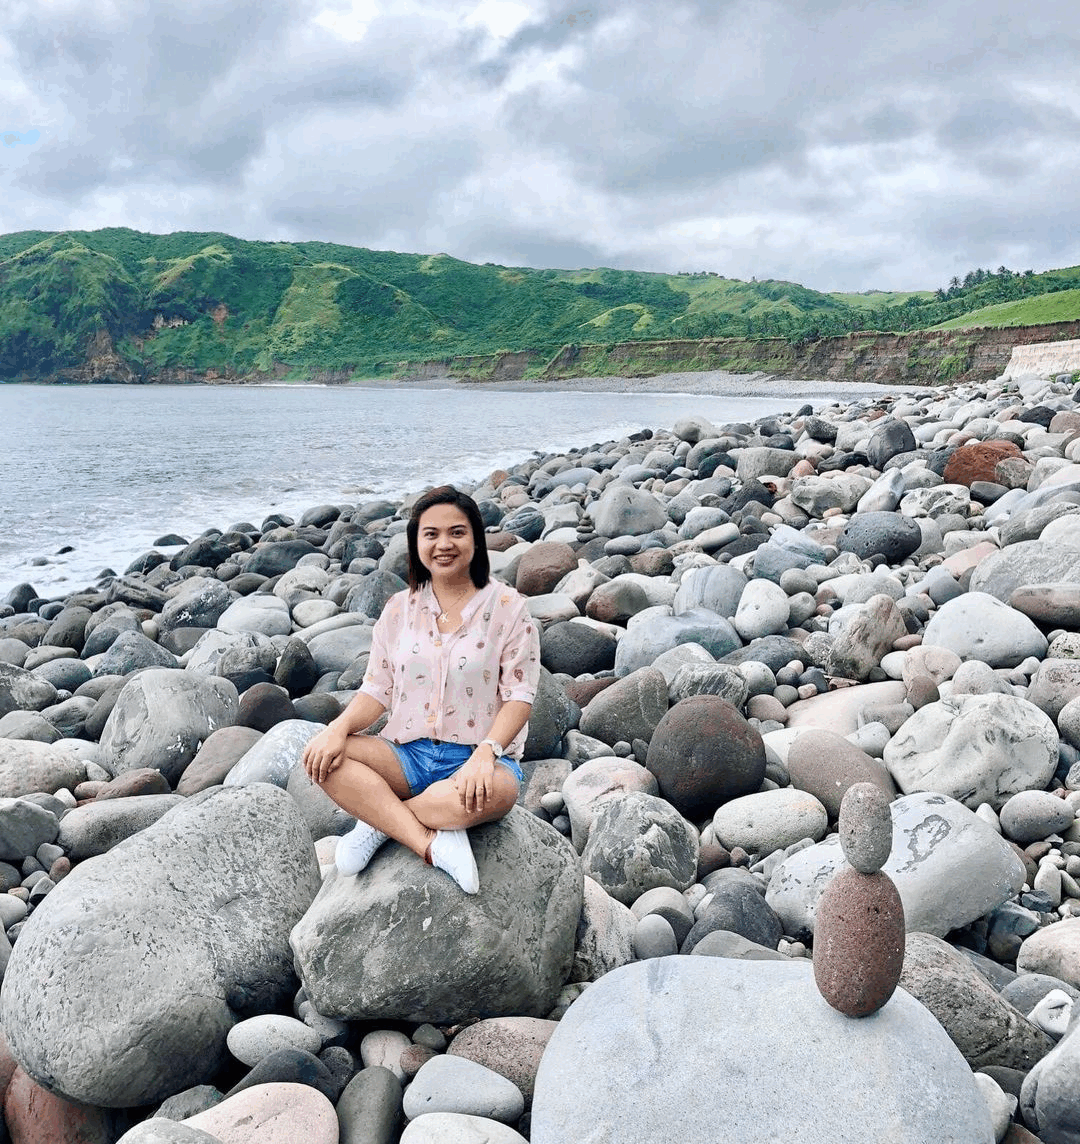 Philippine Islands - Valugan Boulder Beach